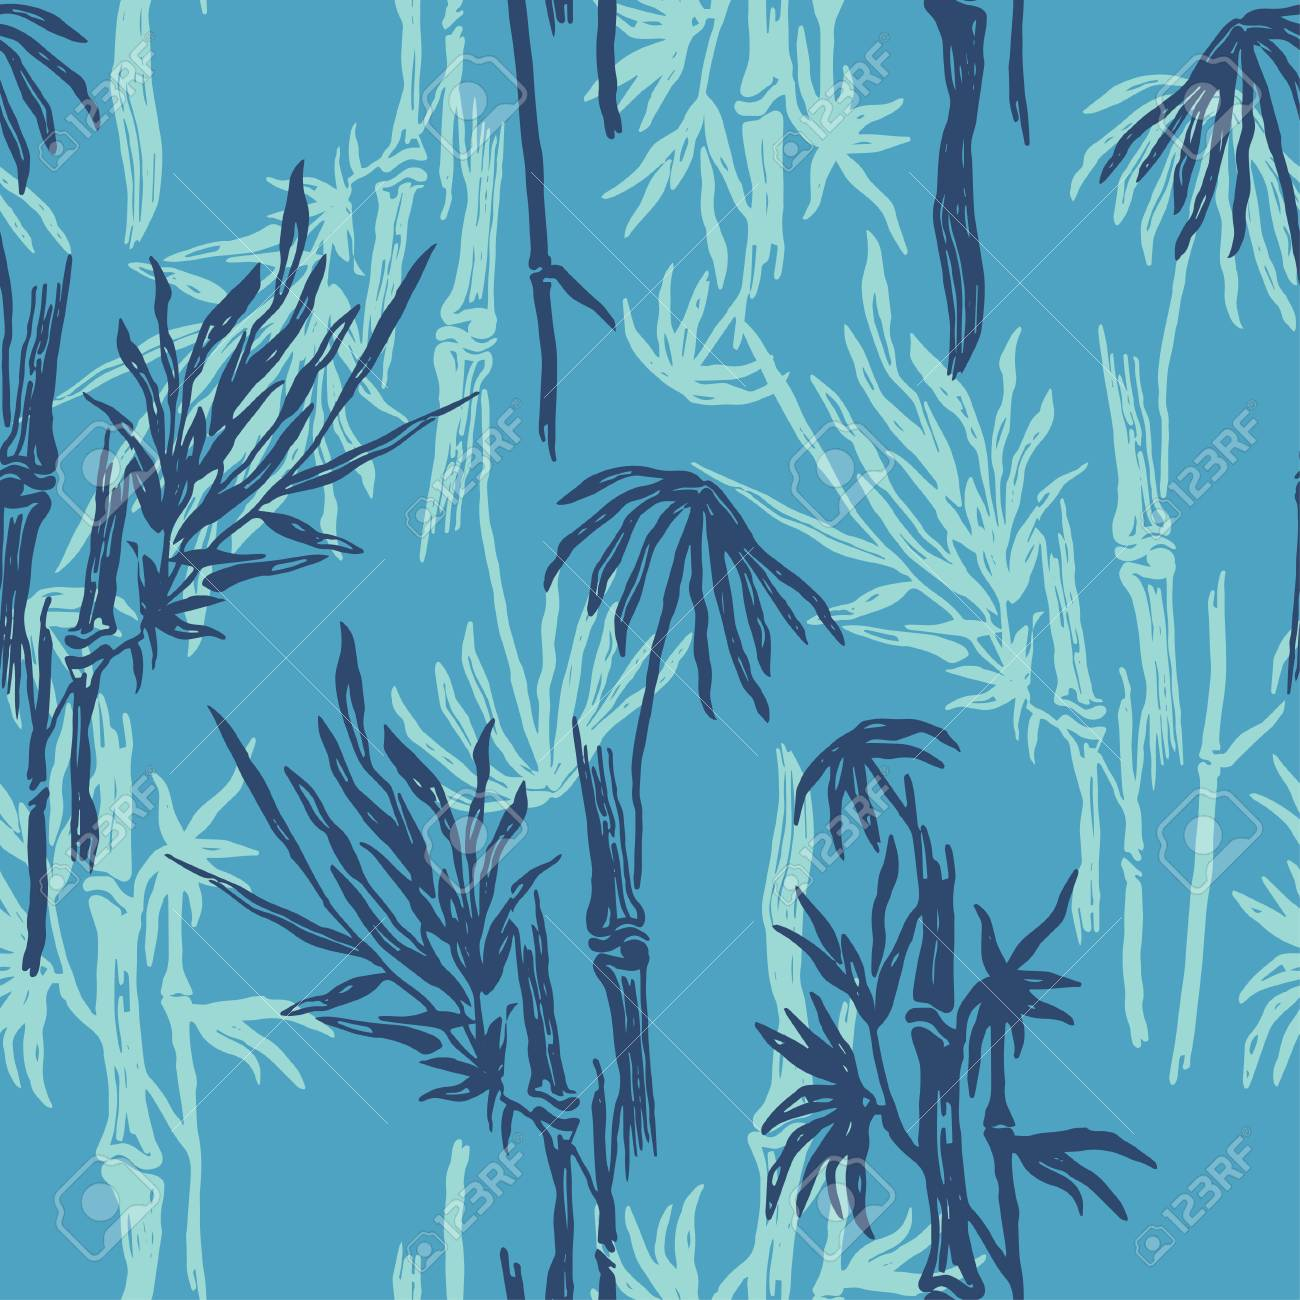 Bamboo Seamless Tropical Pattern On Exotic Blue Background Tropical Royalty Free Cliparts Vectors And Stock Illustration Image 86156983